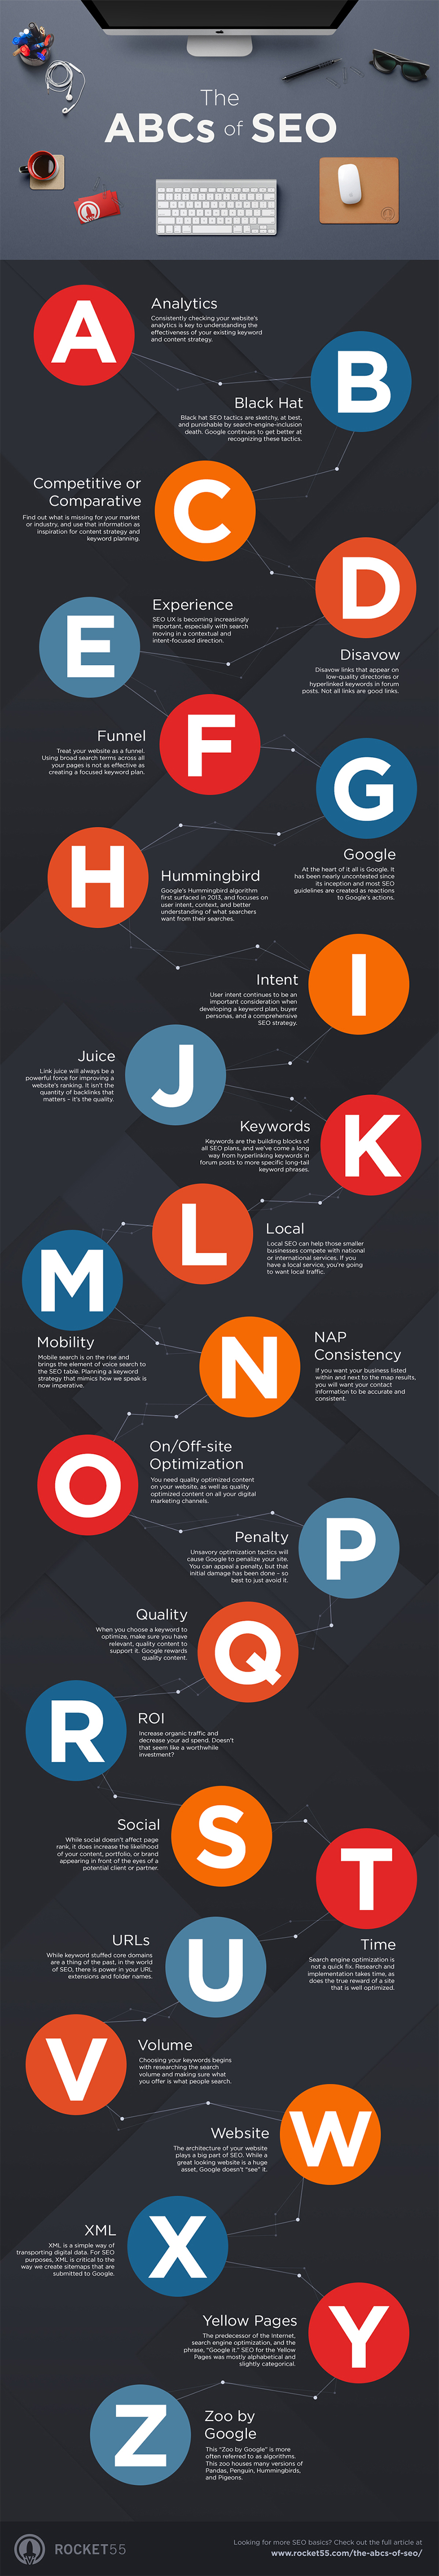 Don't Understand SEO? A Beginners Guide to SEO Terminology [Infographic] | Social Media Today